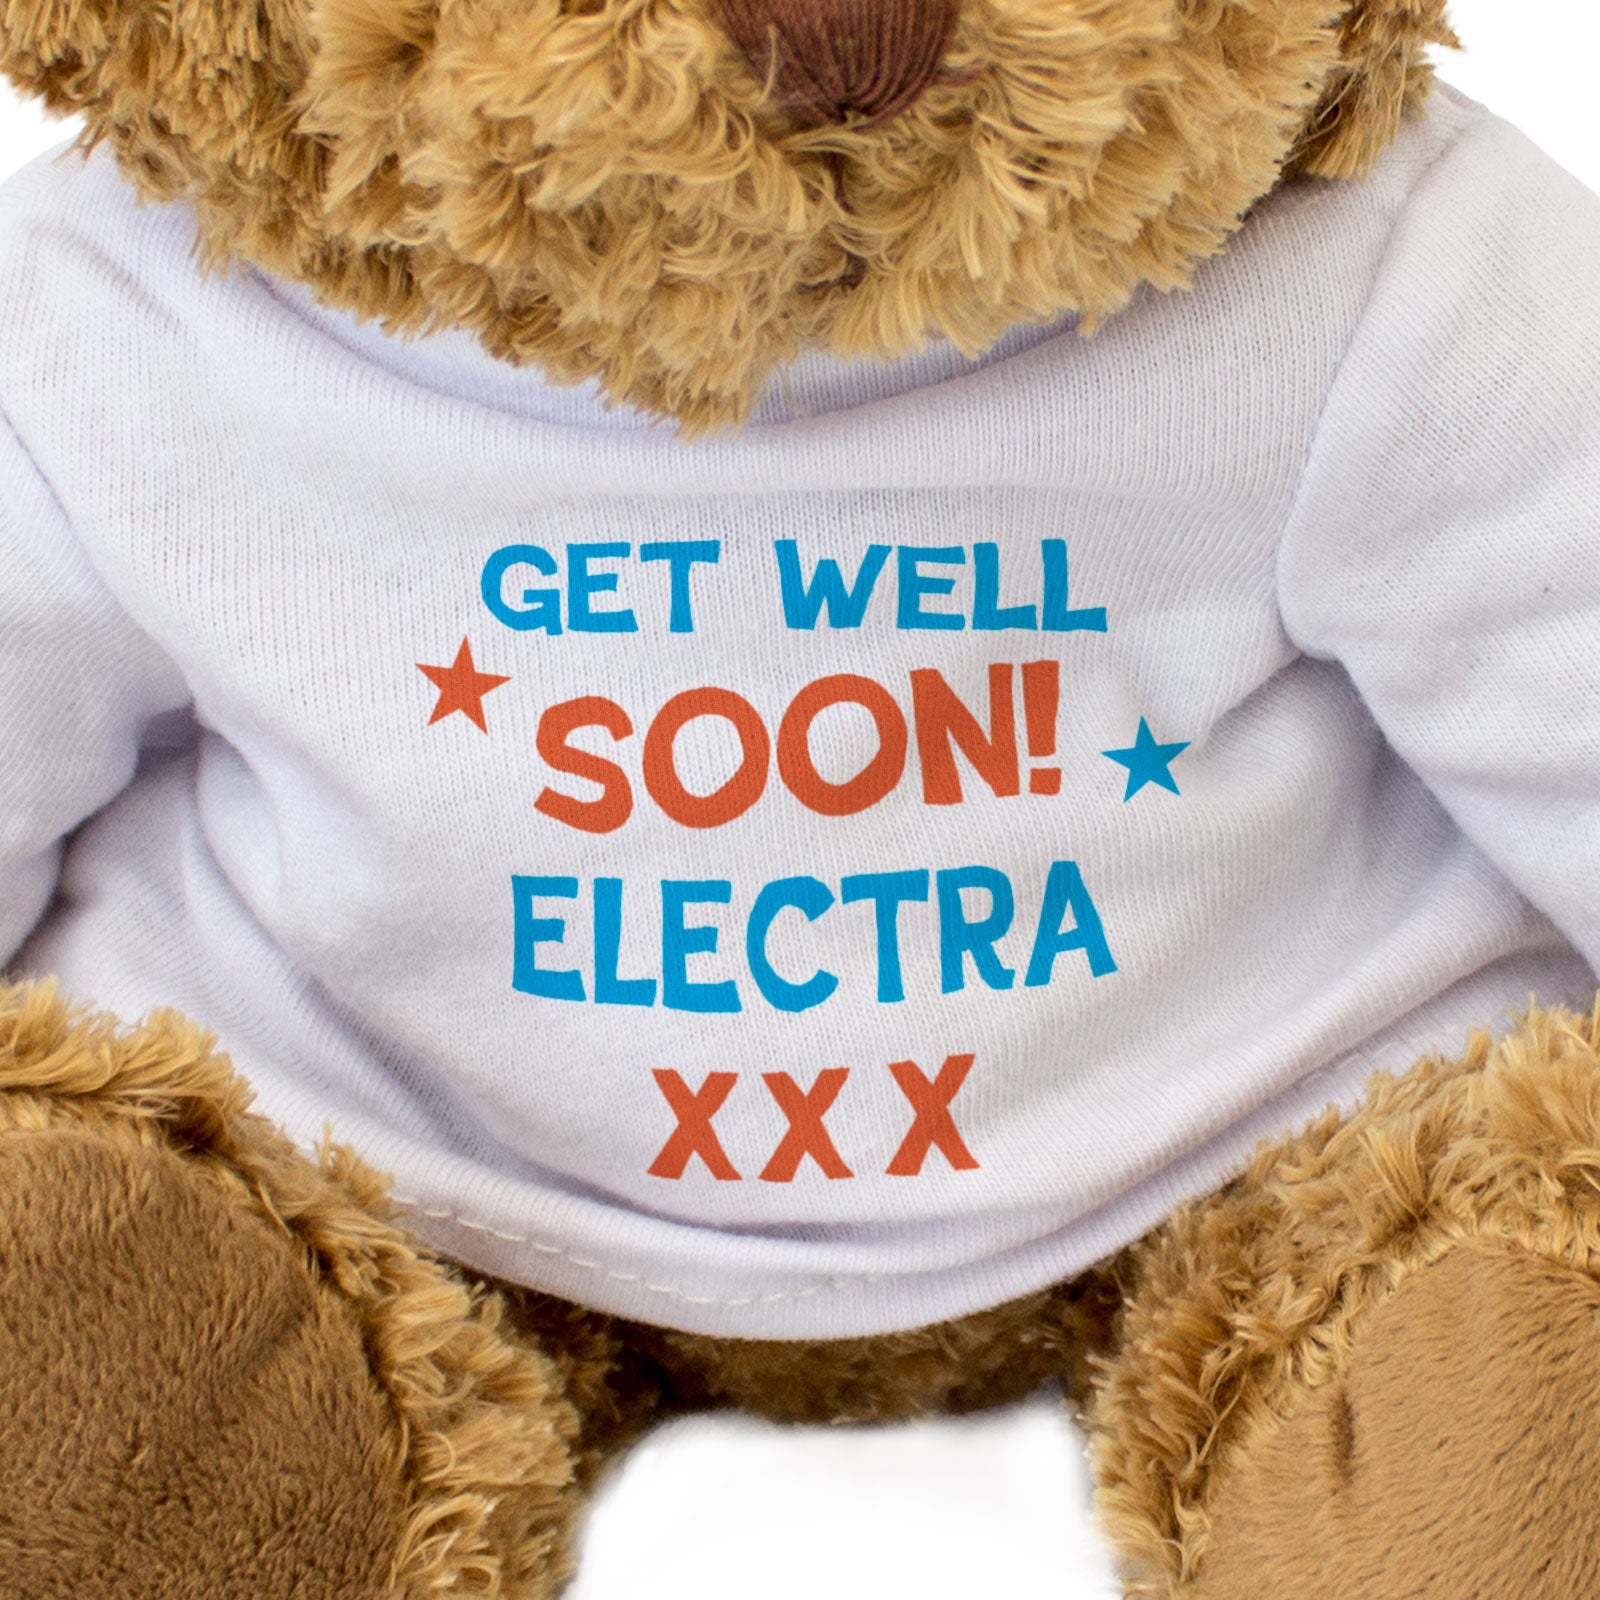 Get Well Soon Electra - Teddy Bear